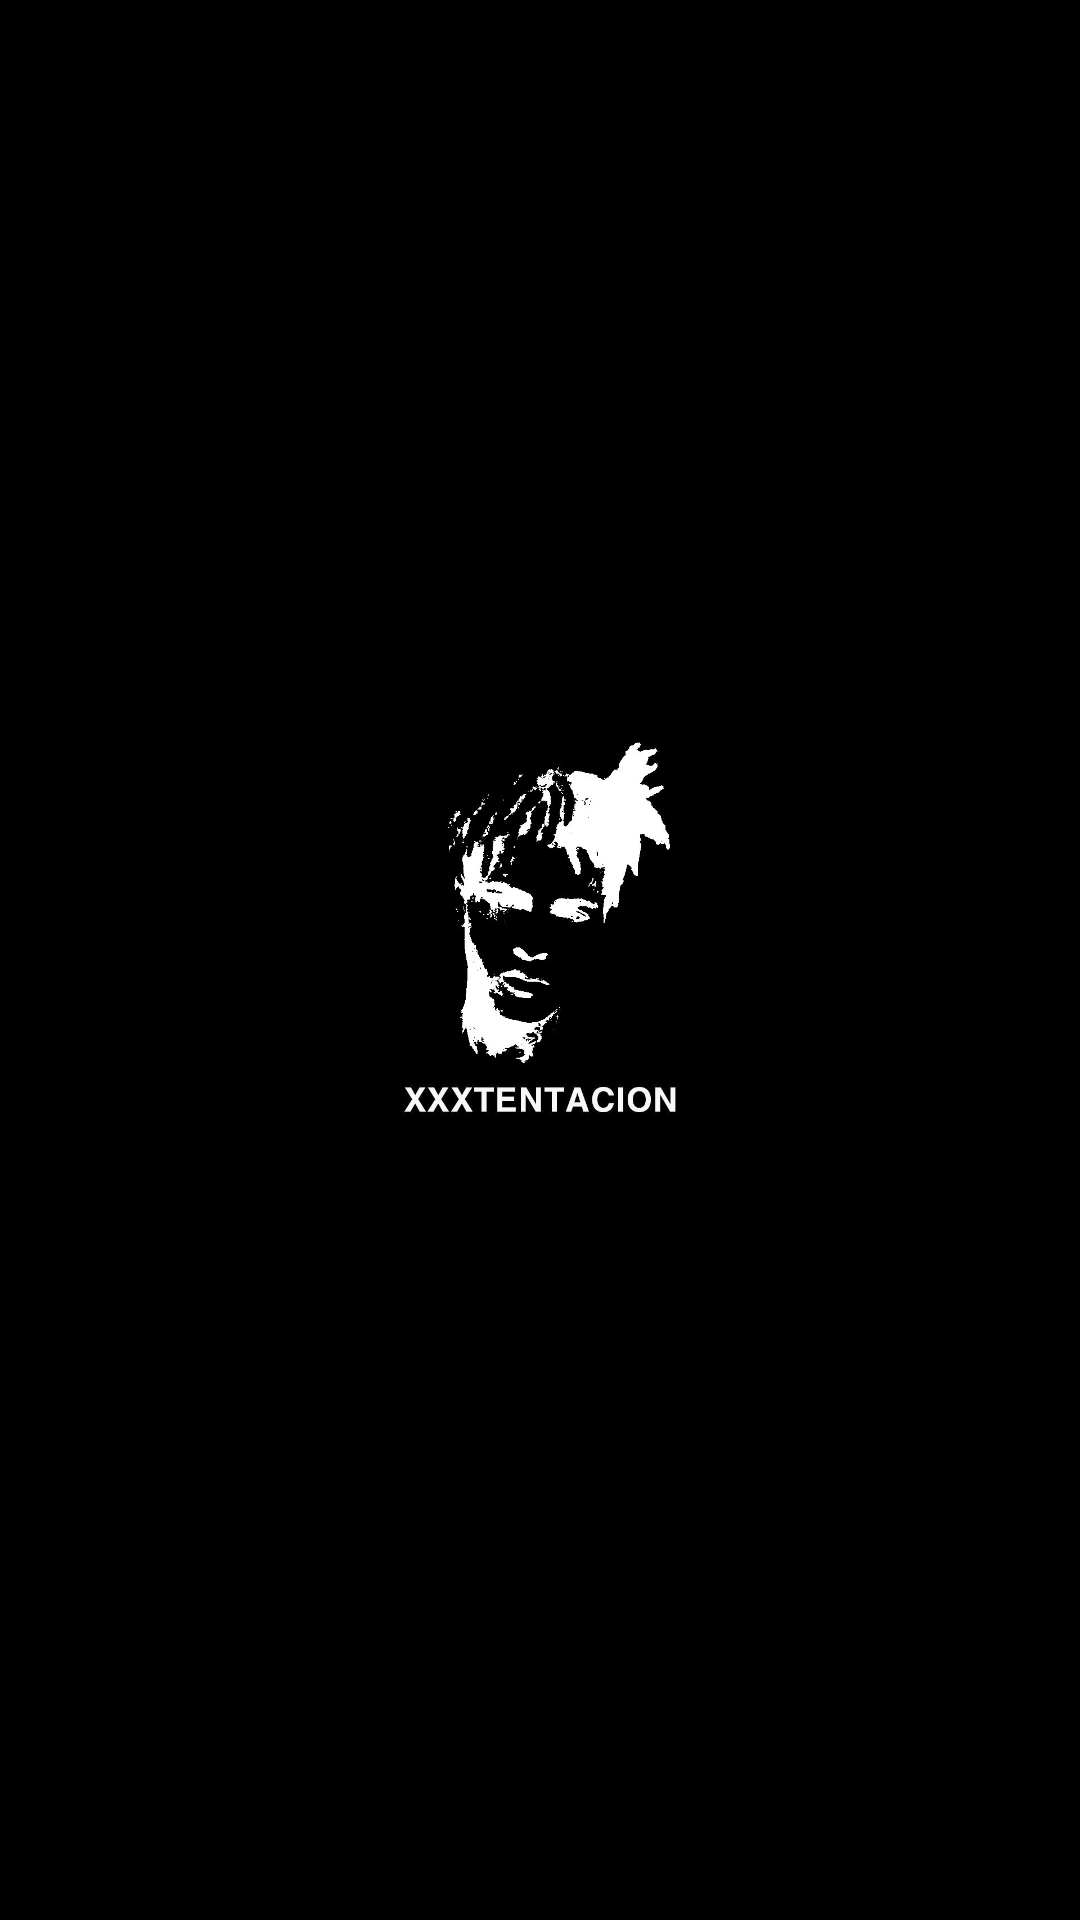 1080x1920 Lil Peep And XXXTentacion Wallpapers